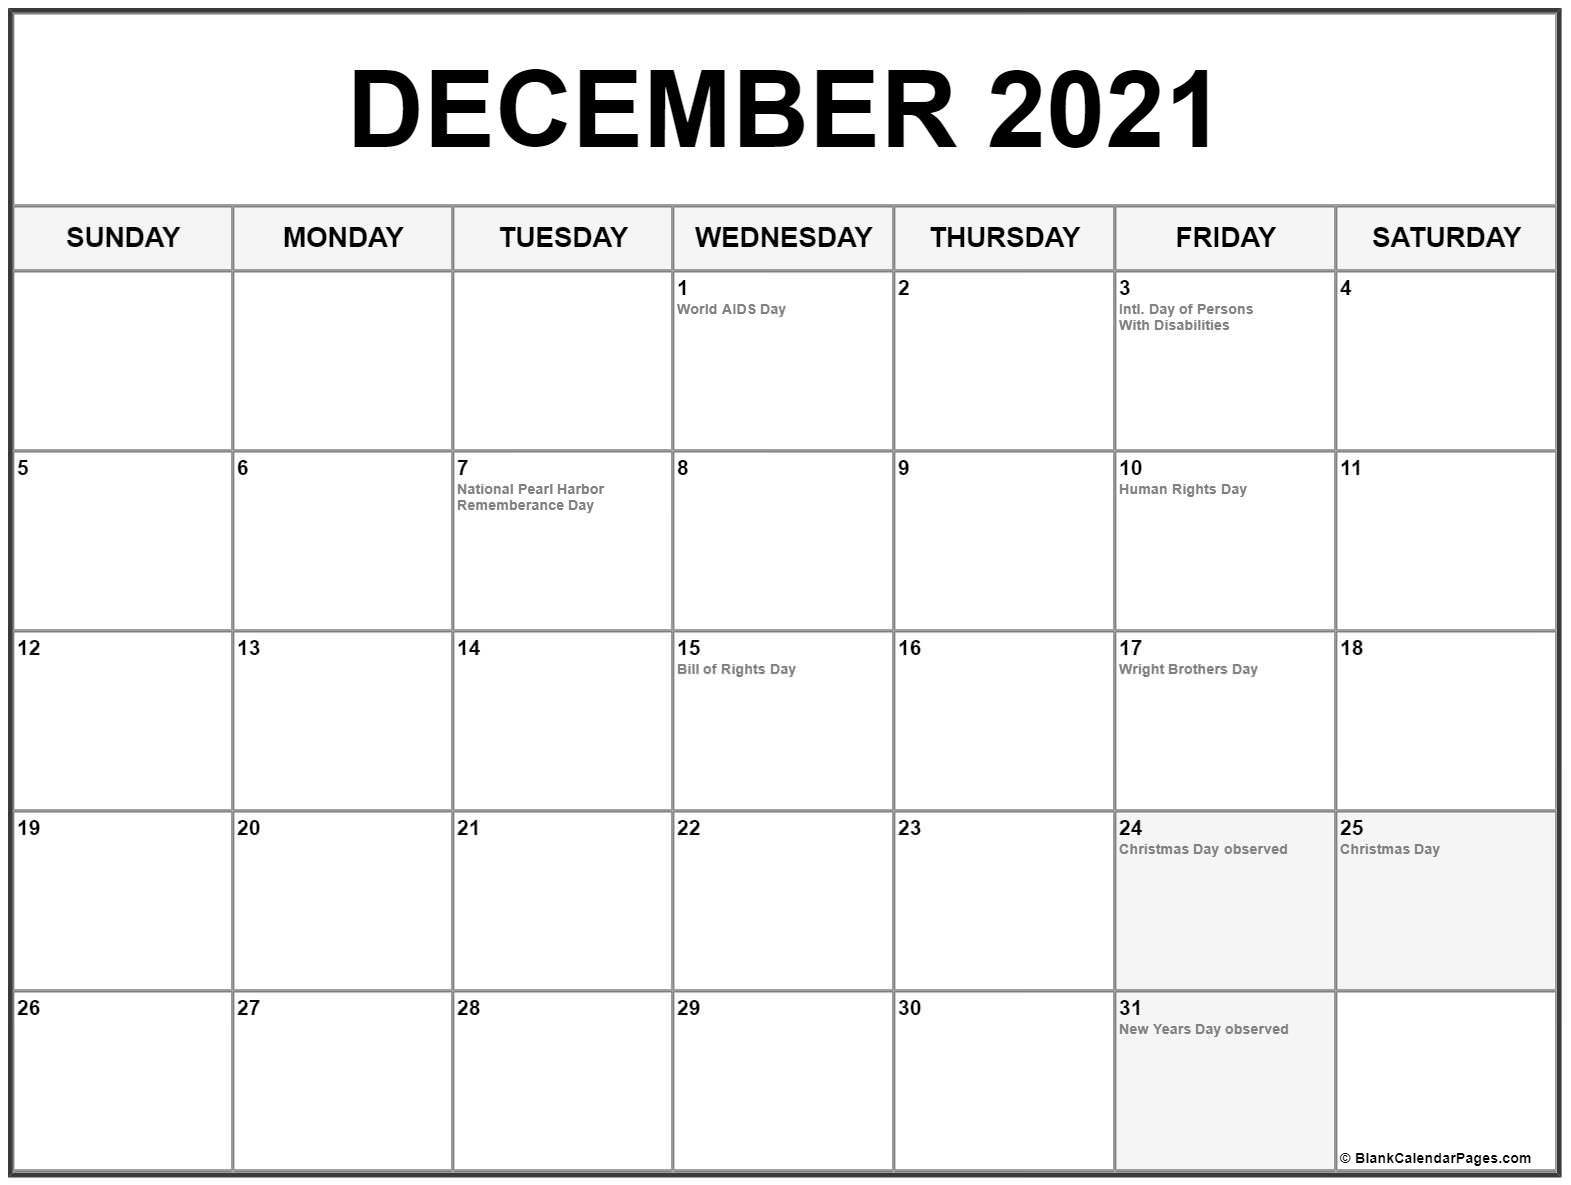 December 2021 Calendar With Holidays